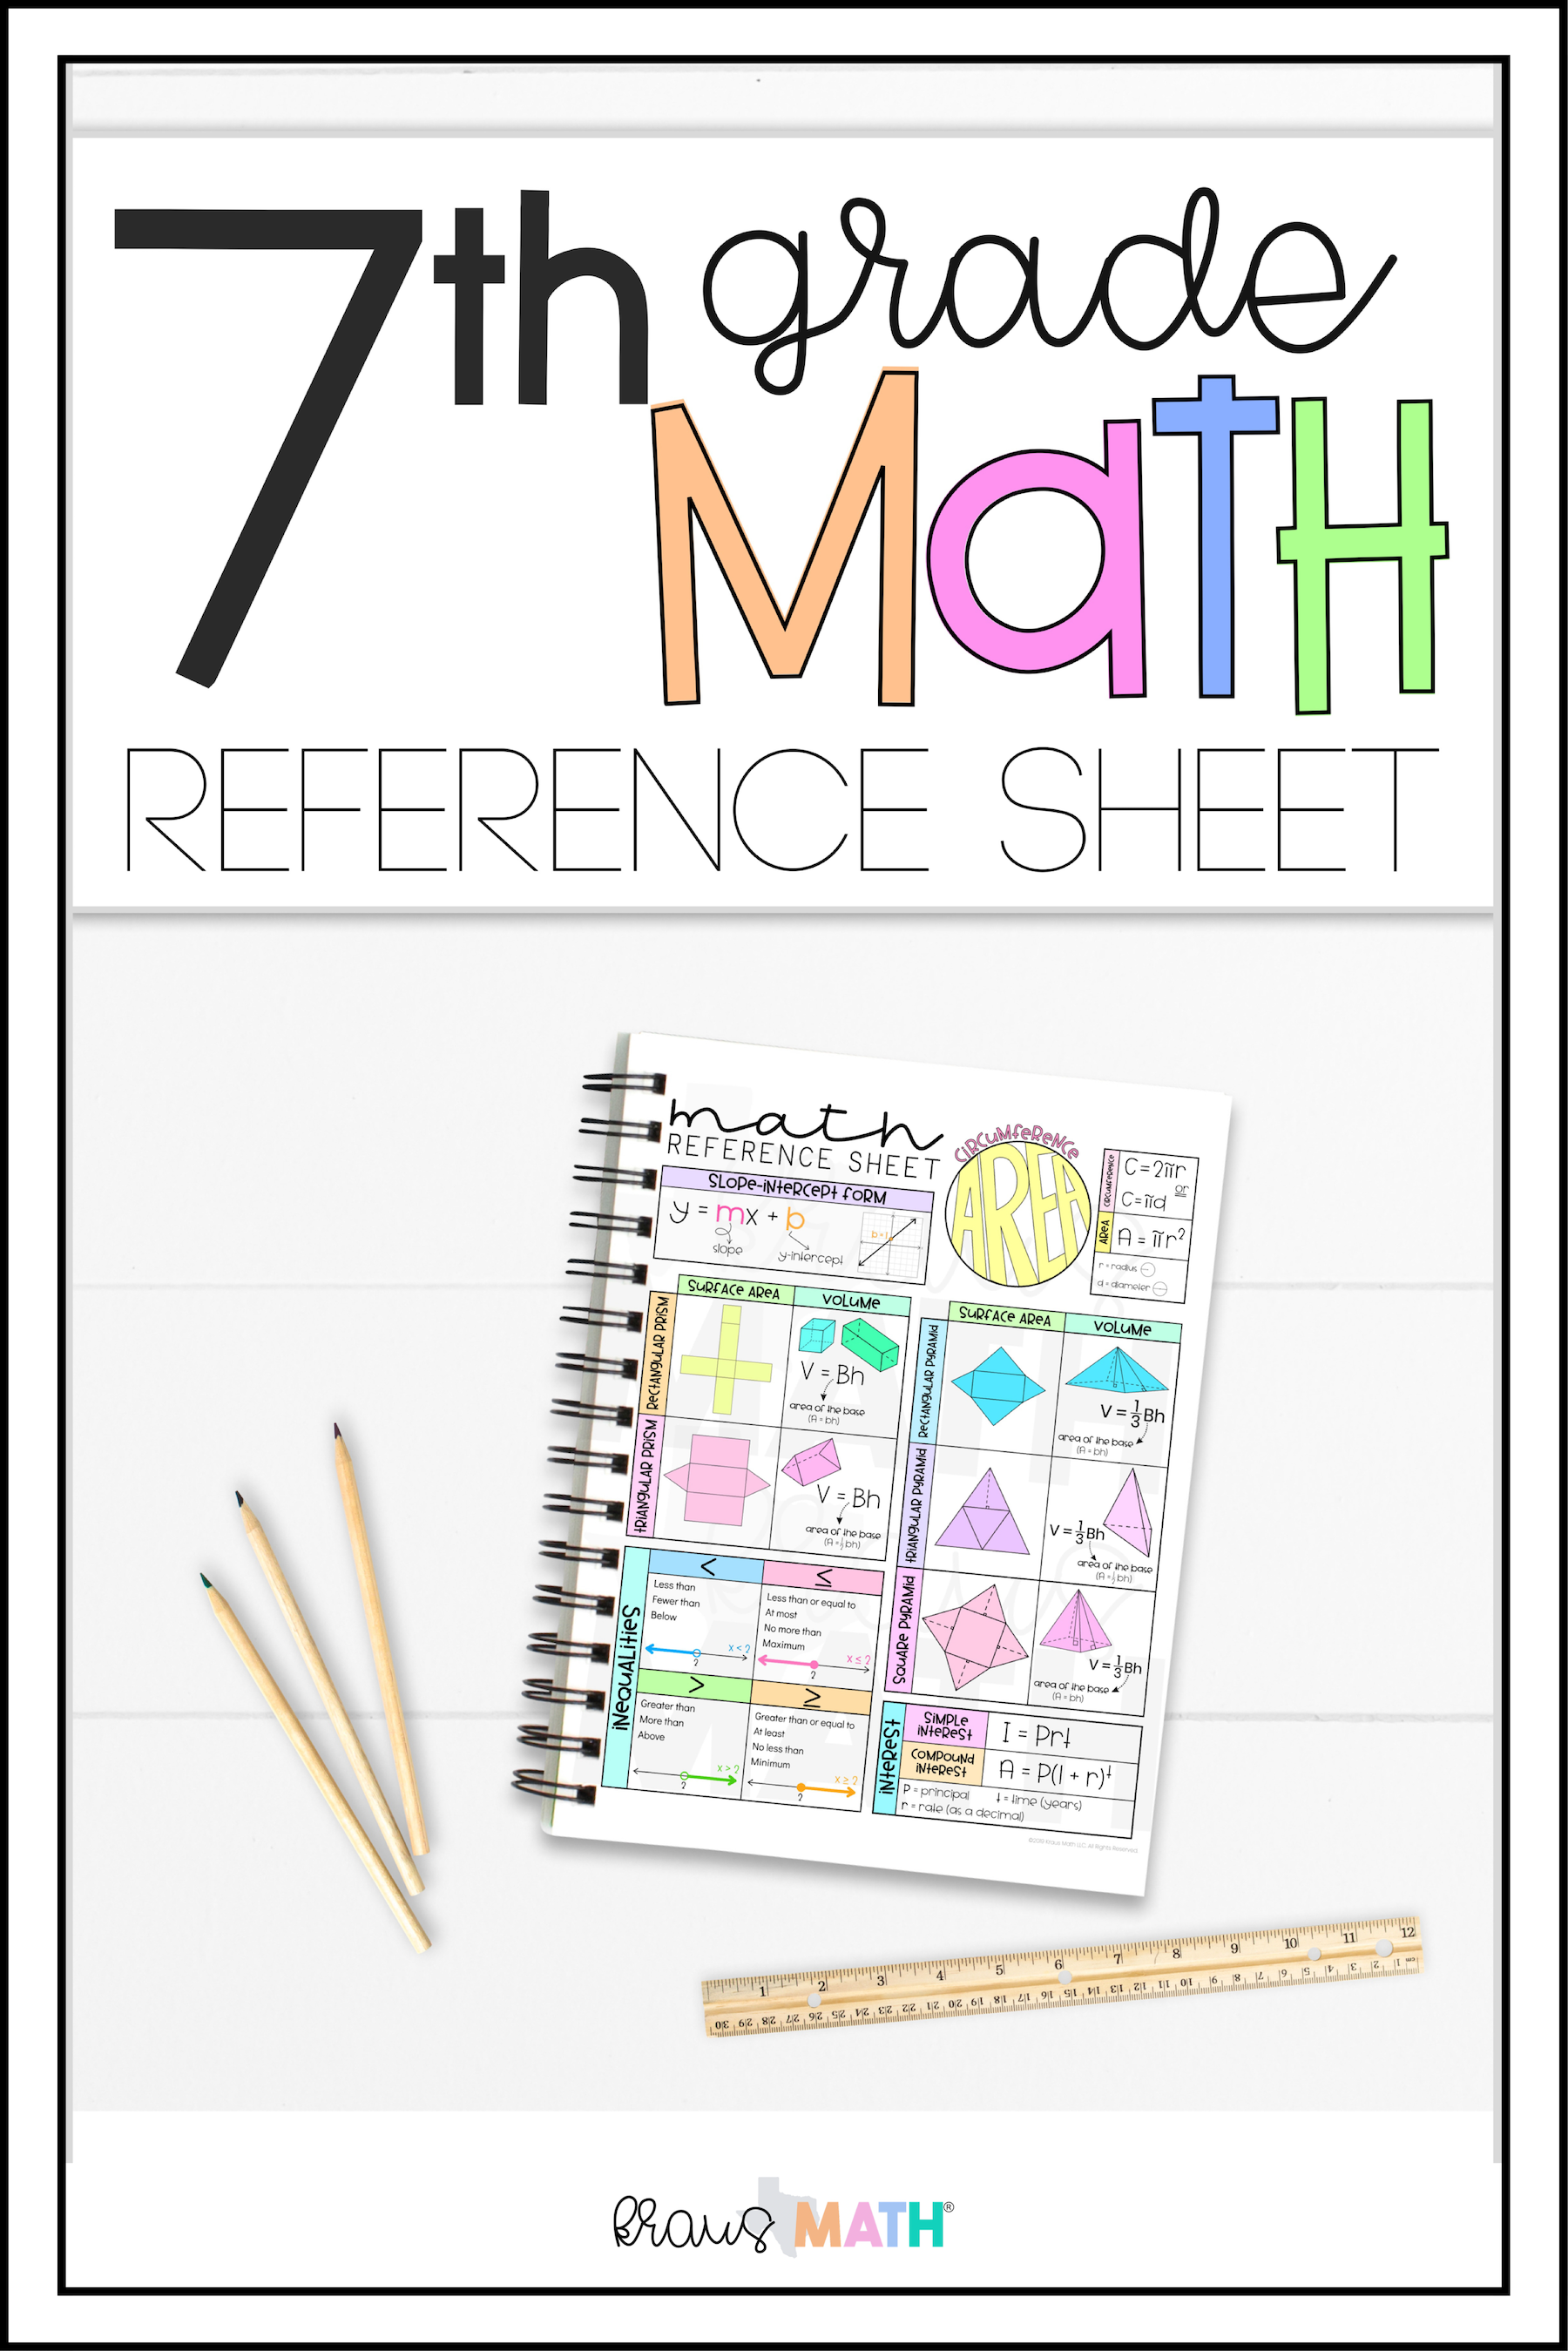 7th Grade Math Reference Sheet   Kraus Math   Math reference sheet [ 2699 x 1800 Pixel ]